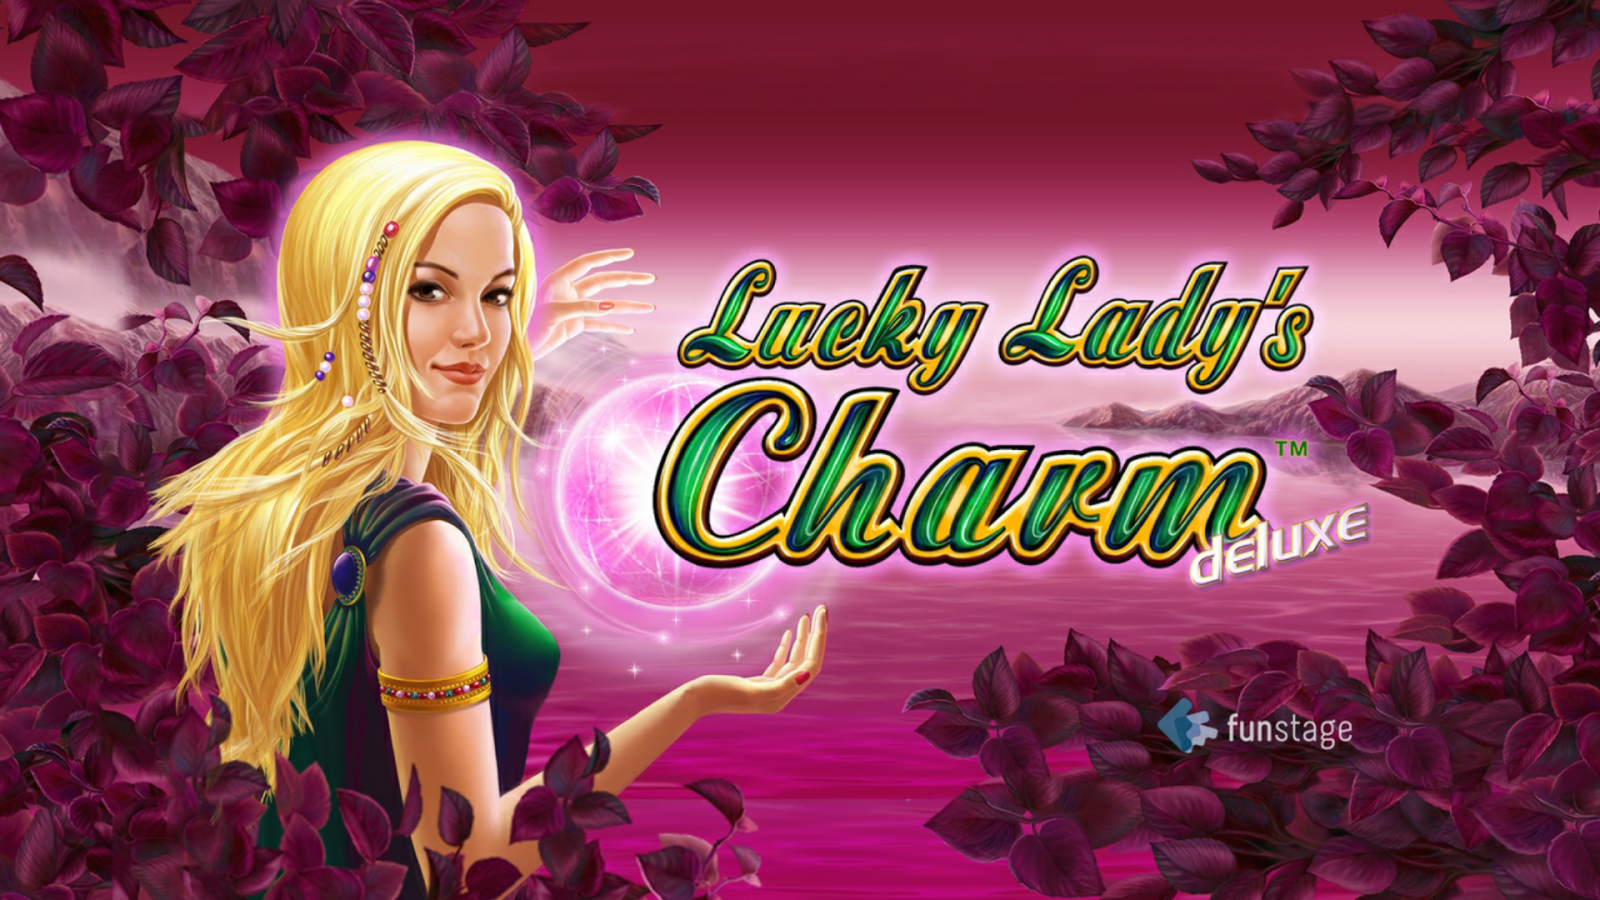 star casino online lucky lady charm